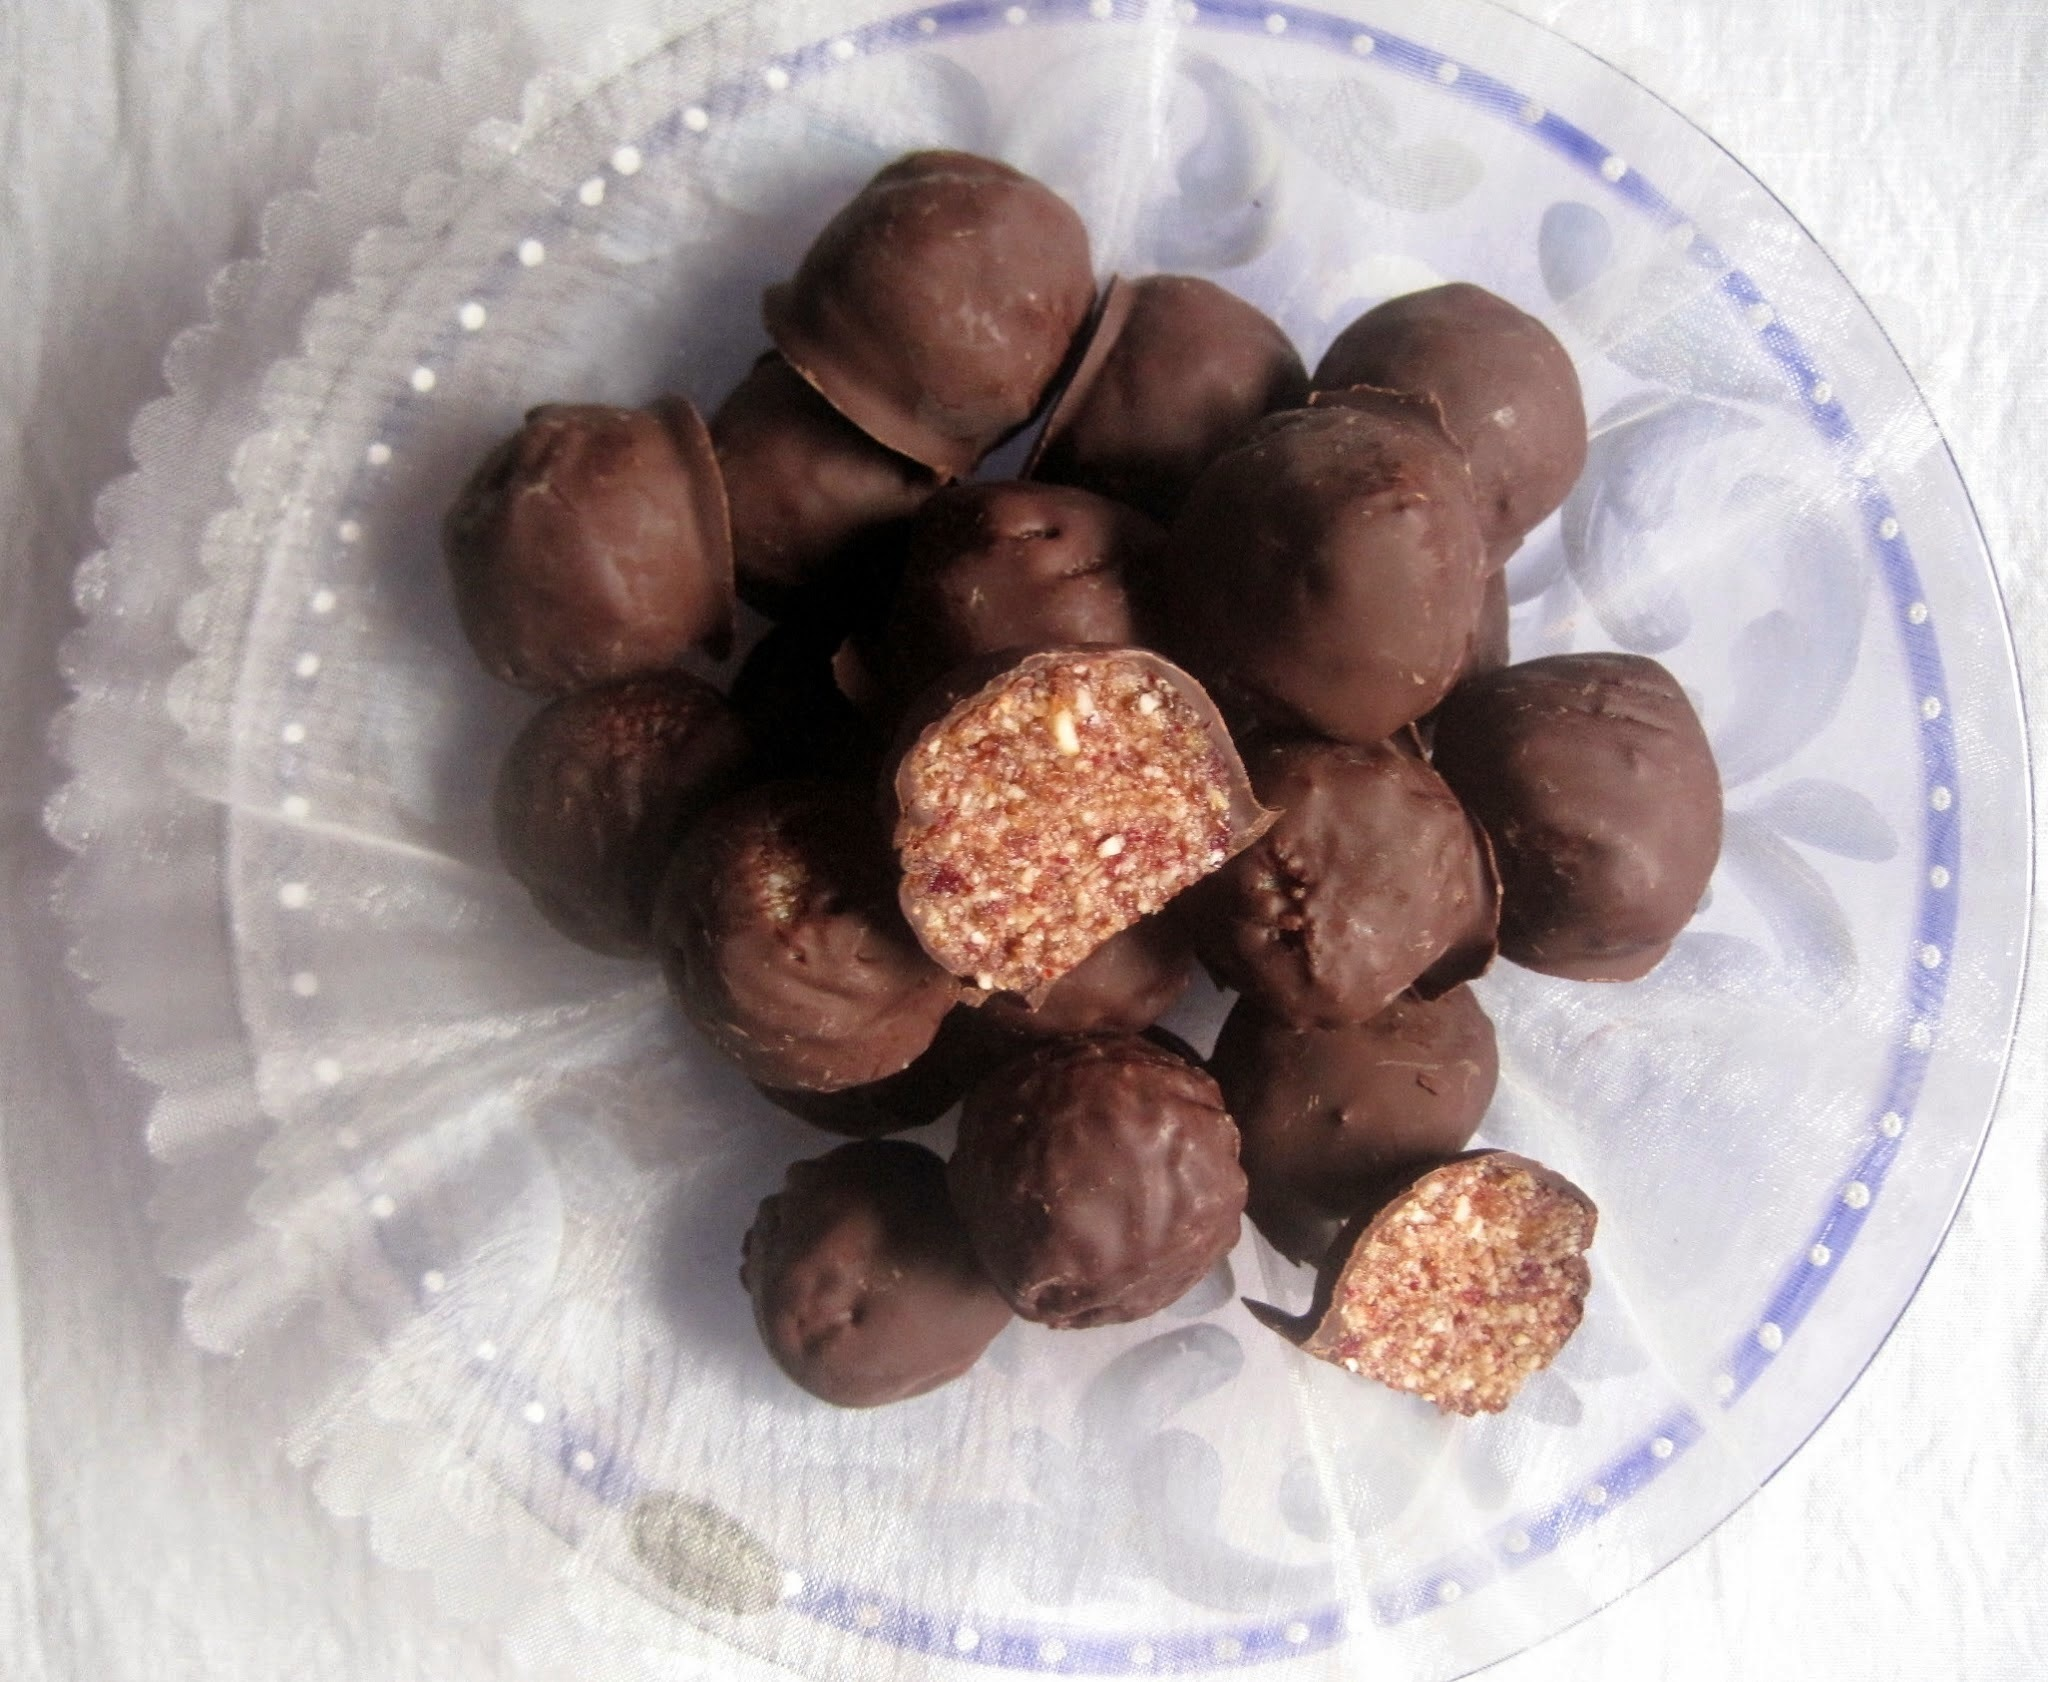 Cioccolatini Vegan - Vegan Chocolate Bon Bons